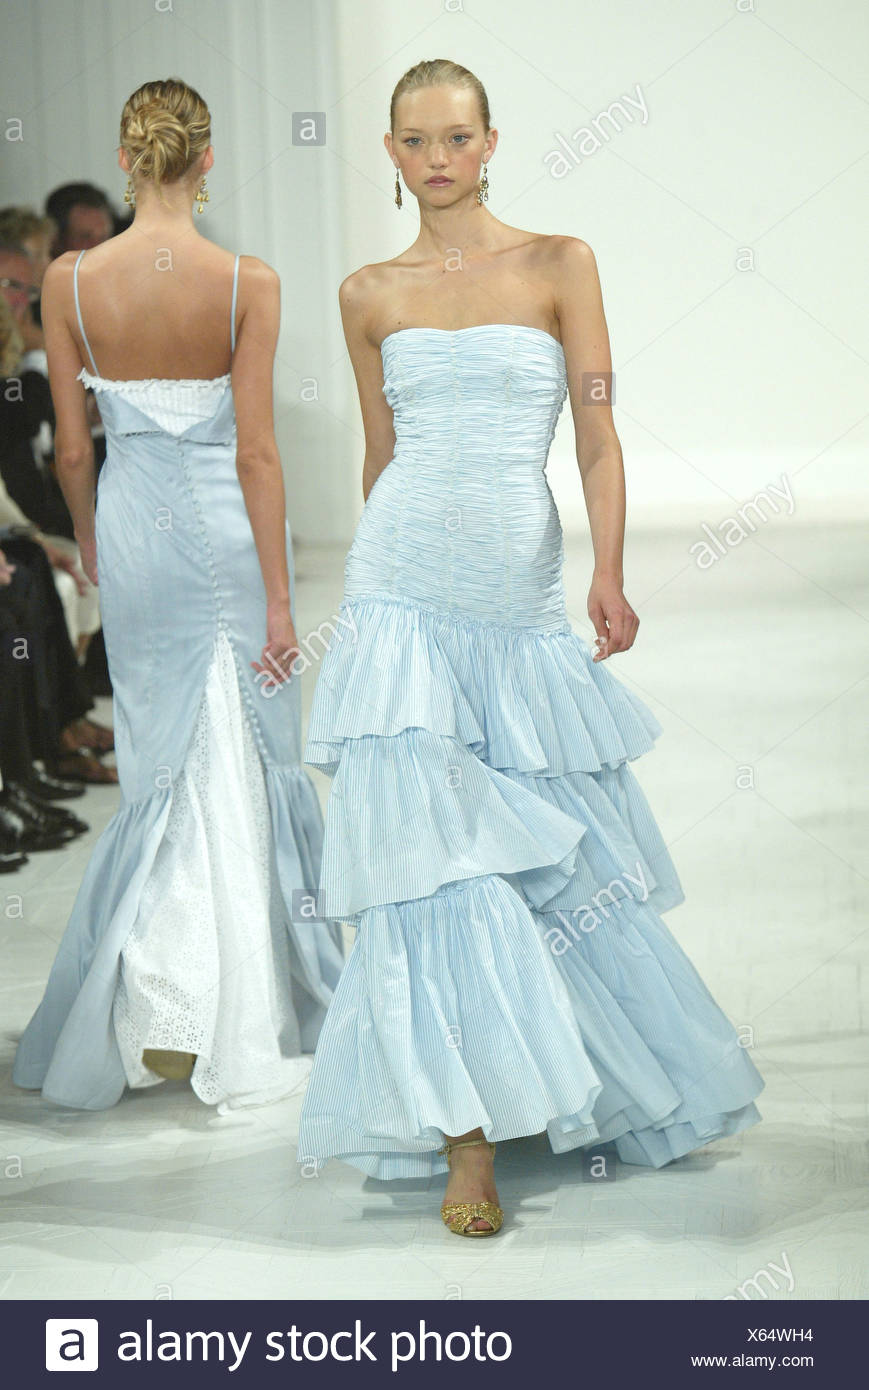 Luxury Dresses To Wear To A Summer Wedding Reception Ornament - All ...